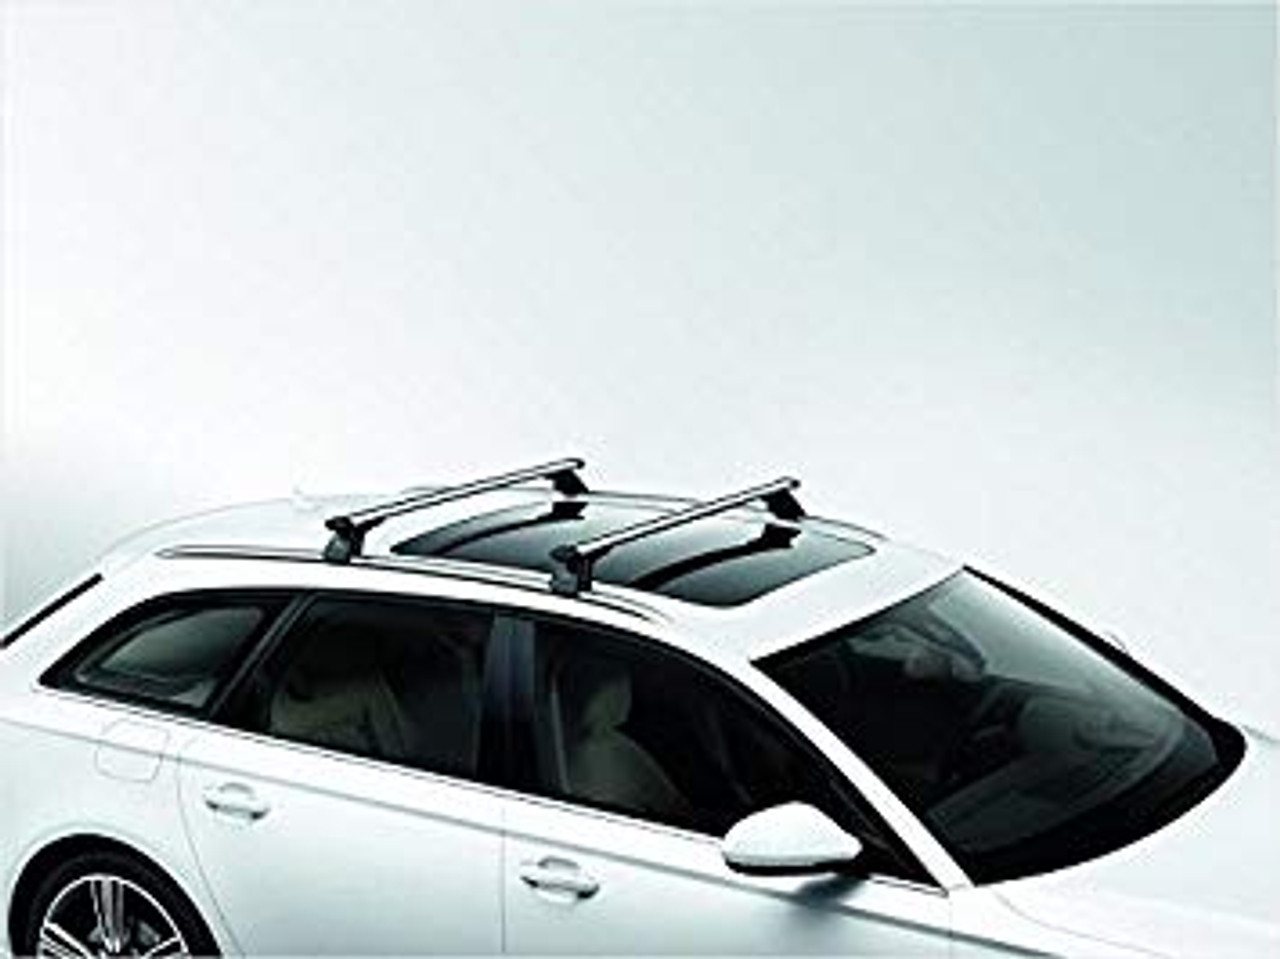 New Genuine Audi A6 Avant 2011-2018 Roof Bars 4G9071151A